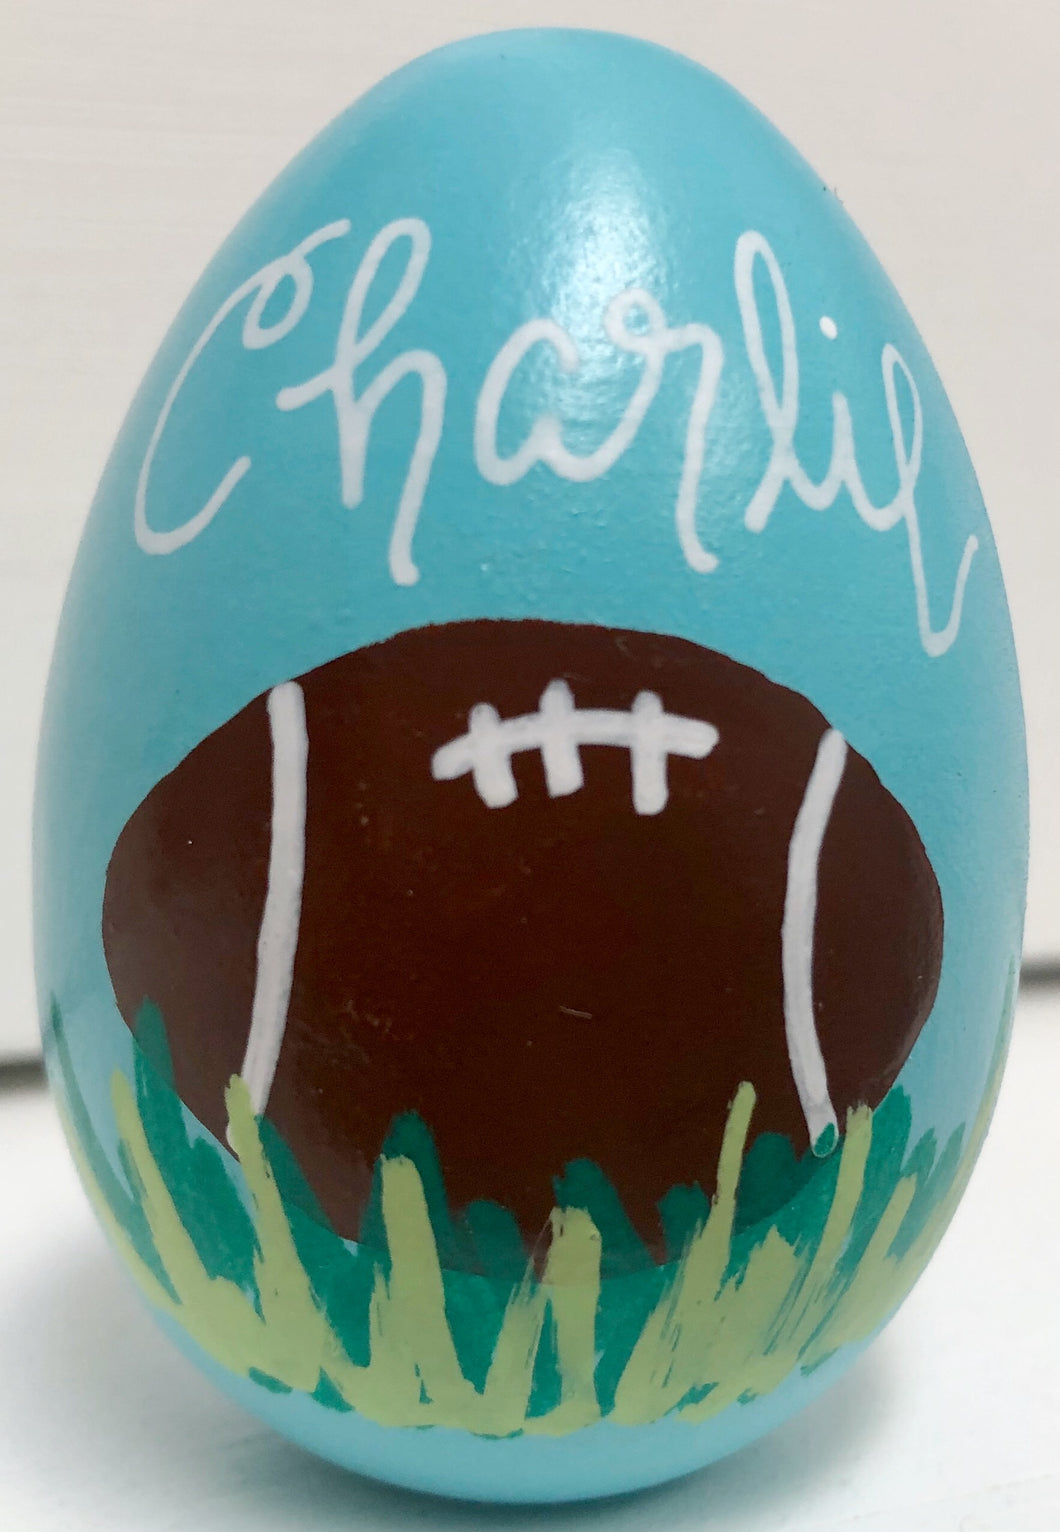 Easter Egg- Standard Football